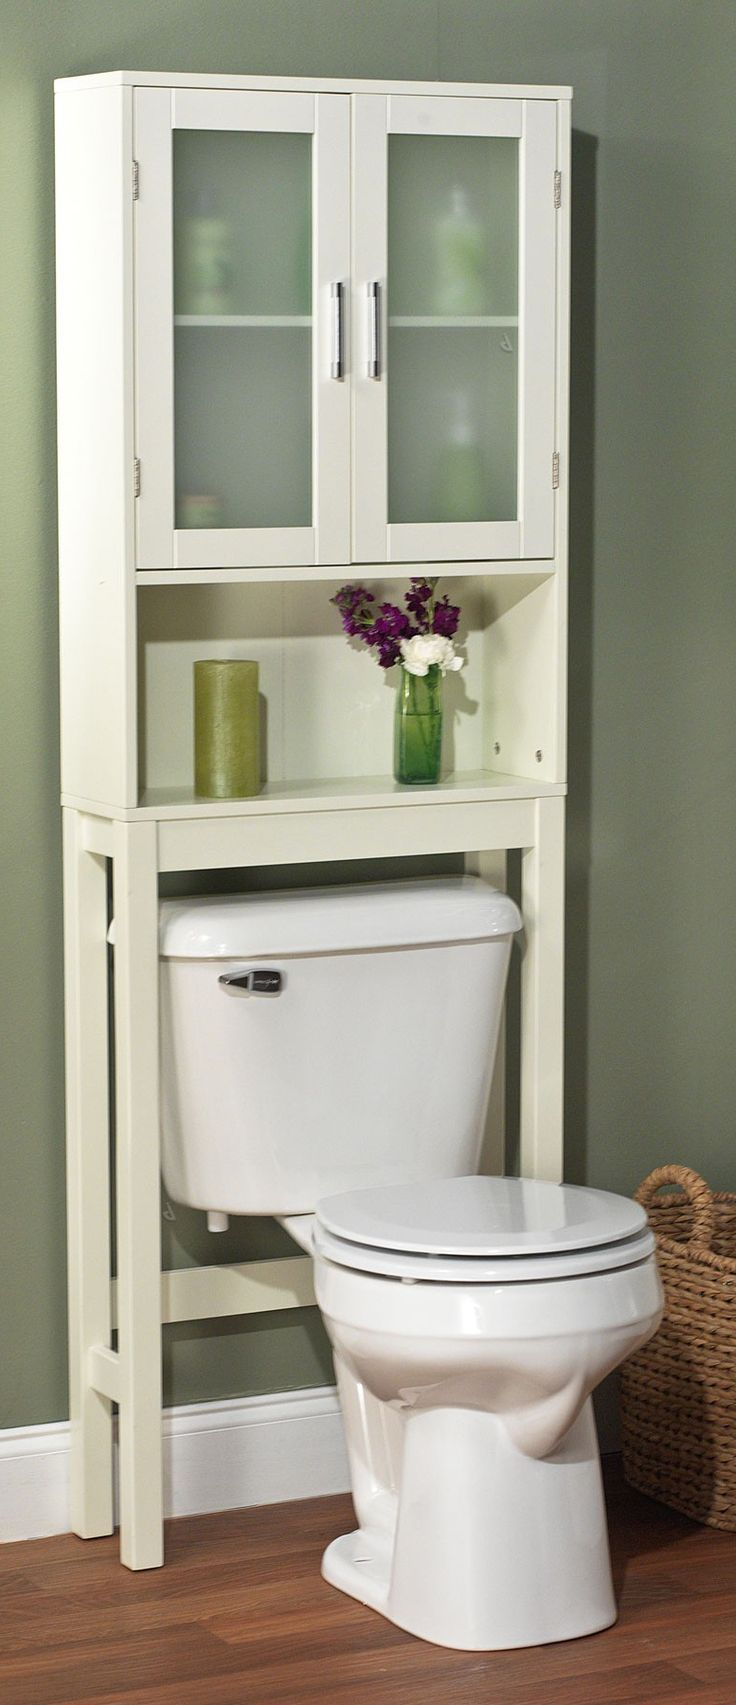 Small Bathroom Closet Home Design